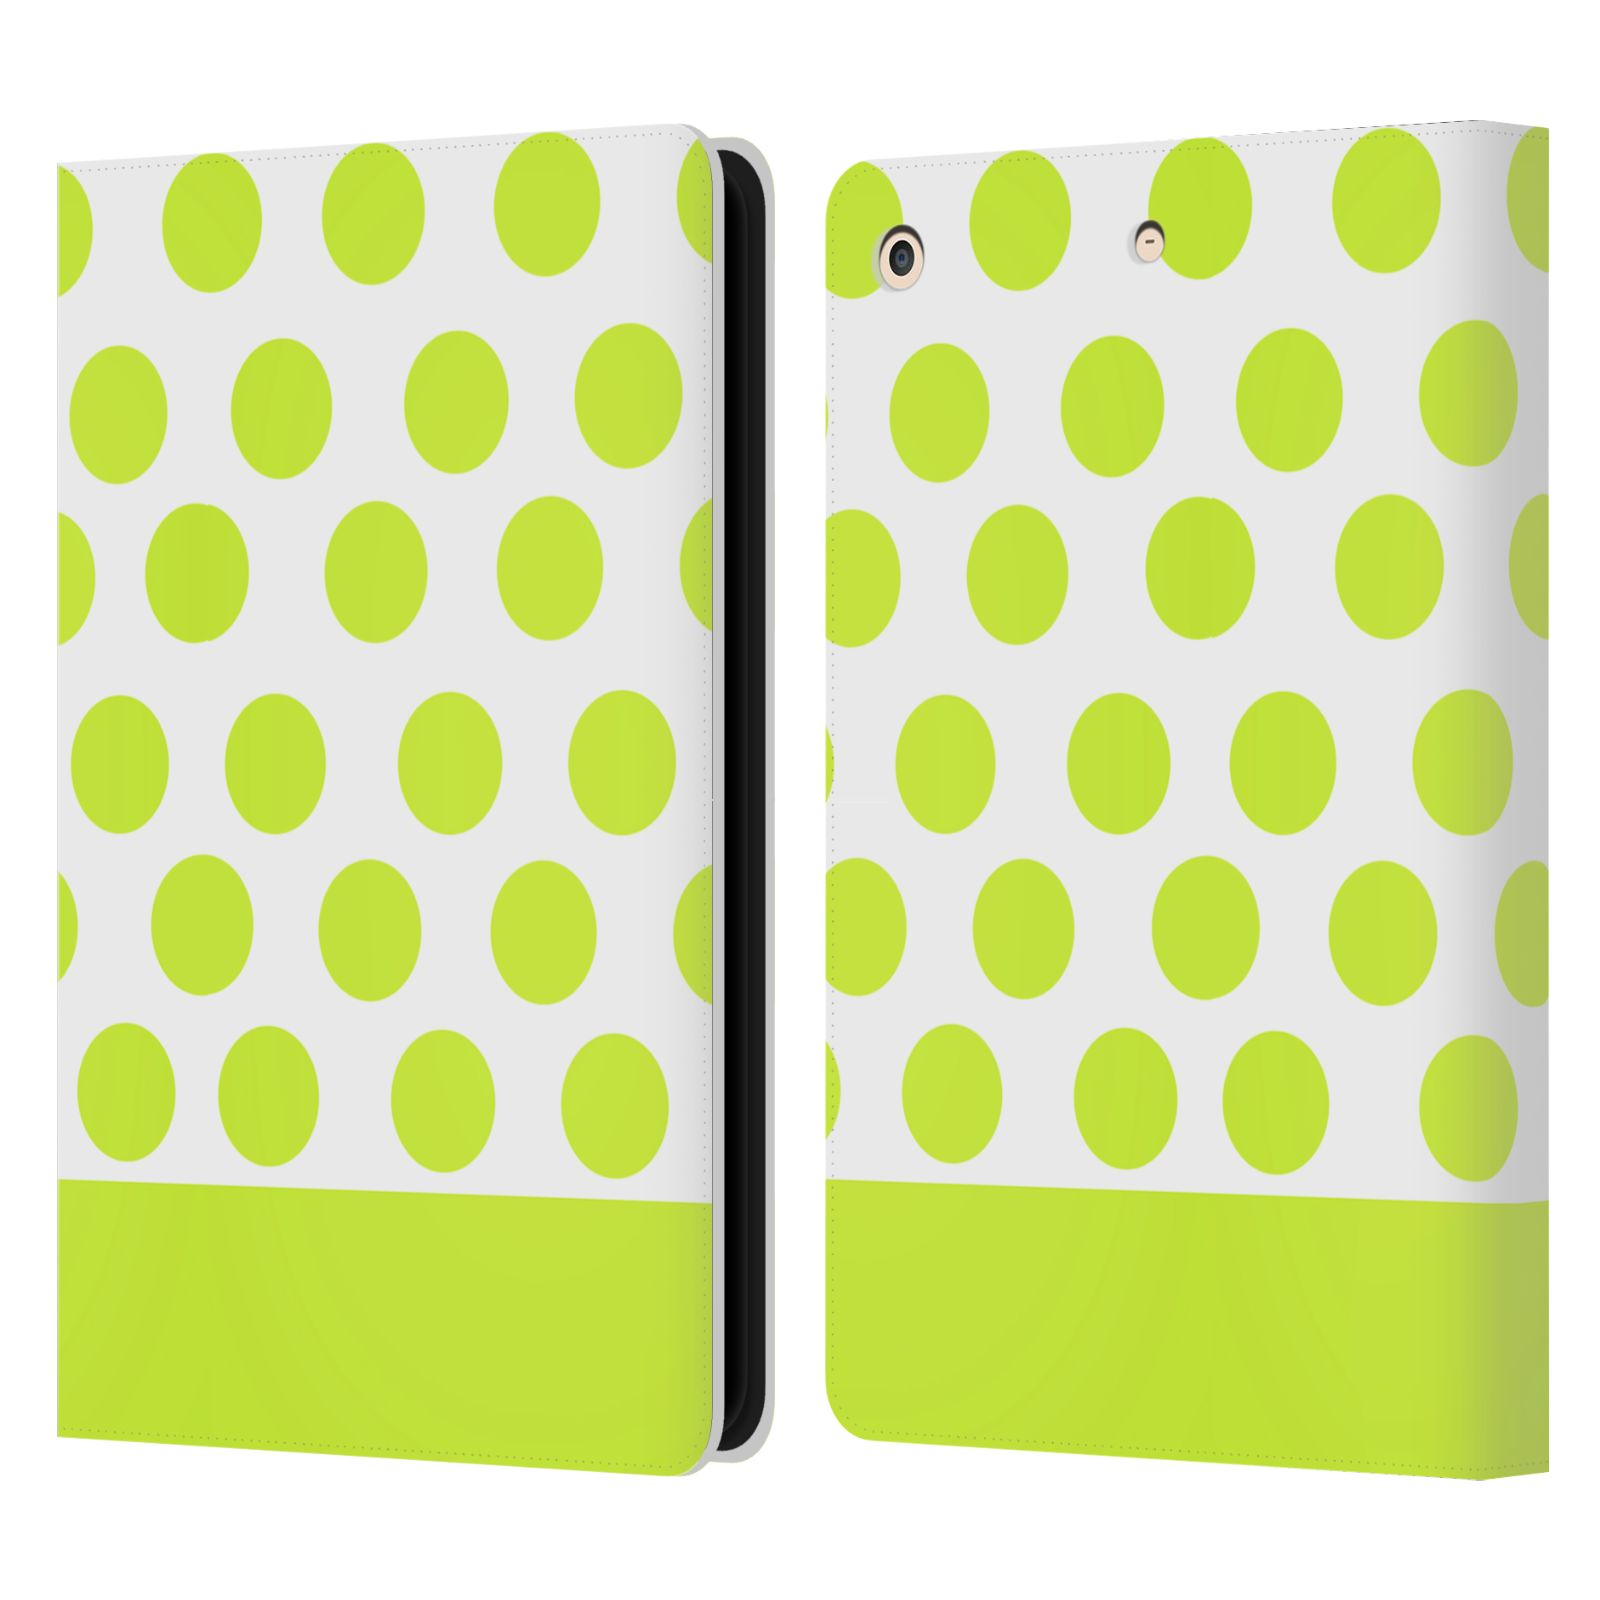 Head case designs nail art leather book wallet case cover for Apple design book